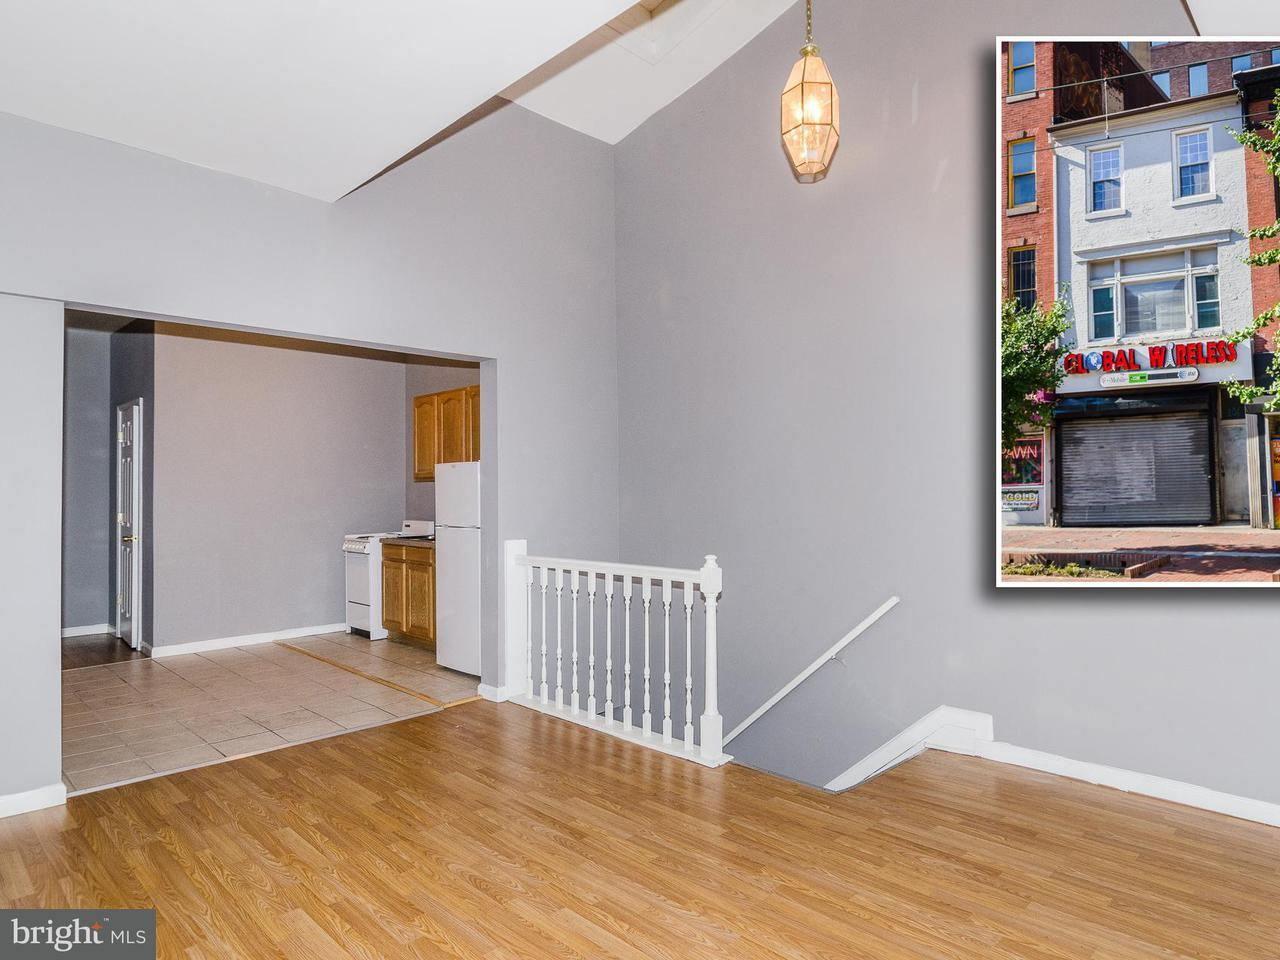 Commercial for Sale at 106 Howard St N Baltimore, Maryland 21201 United States